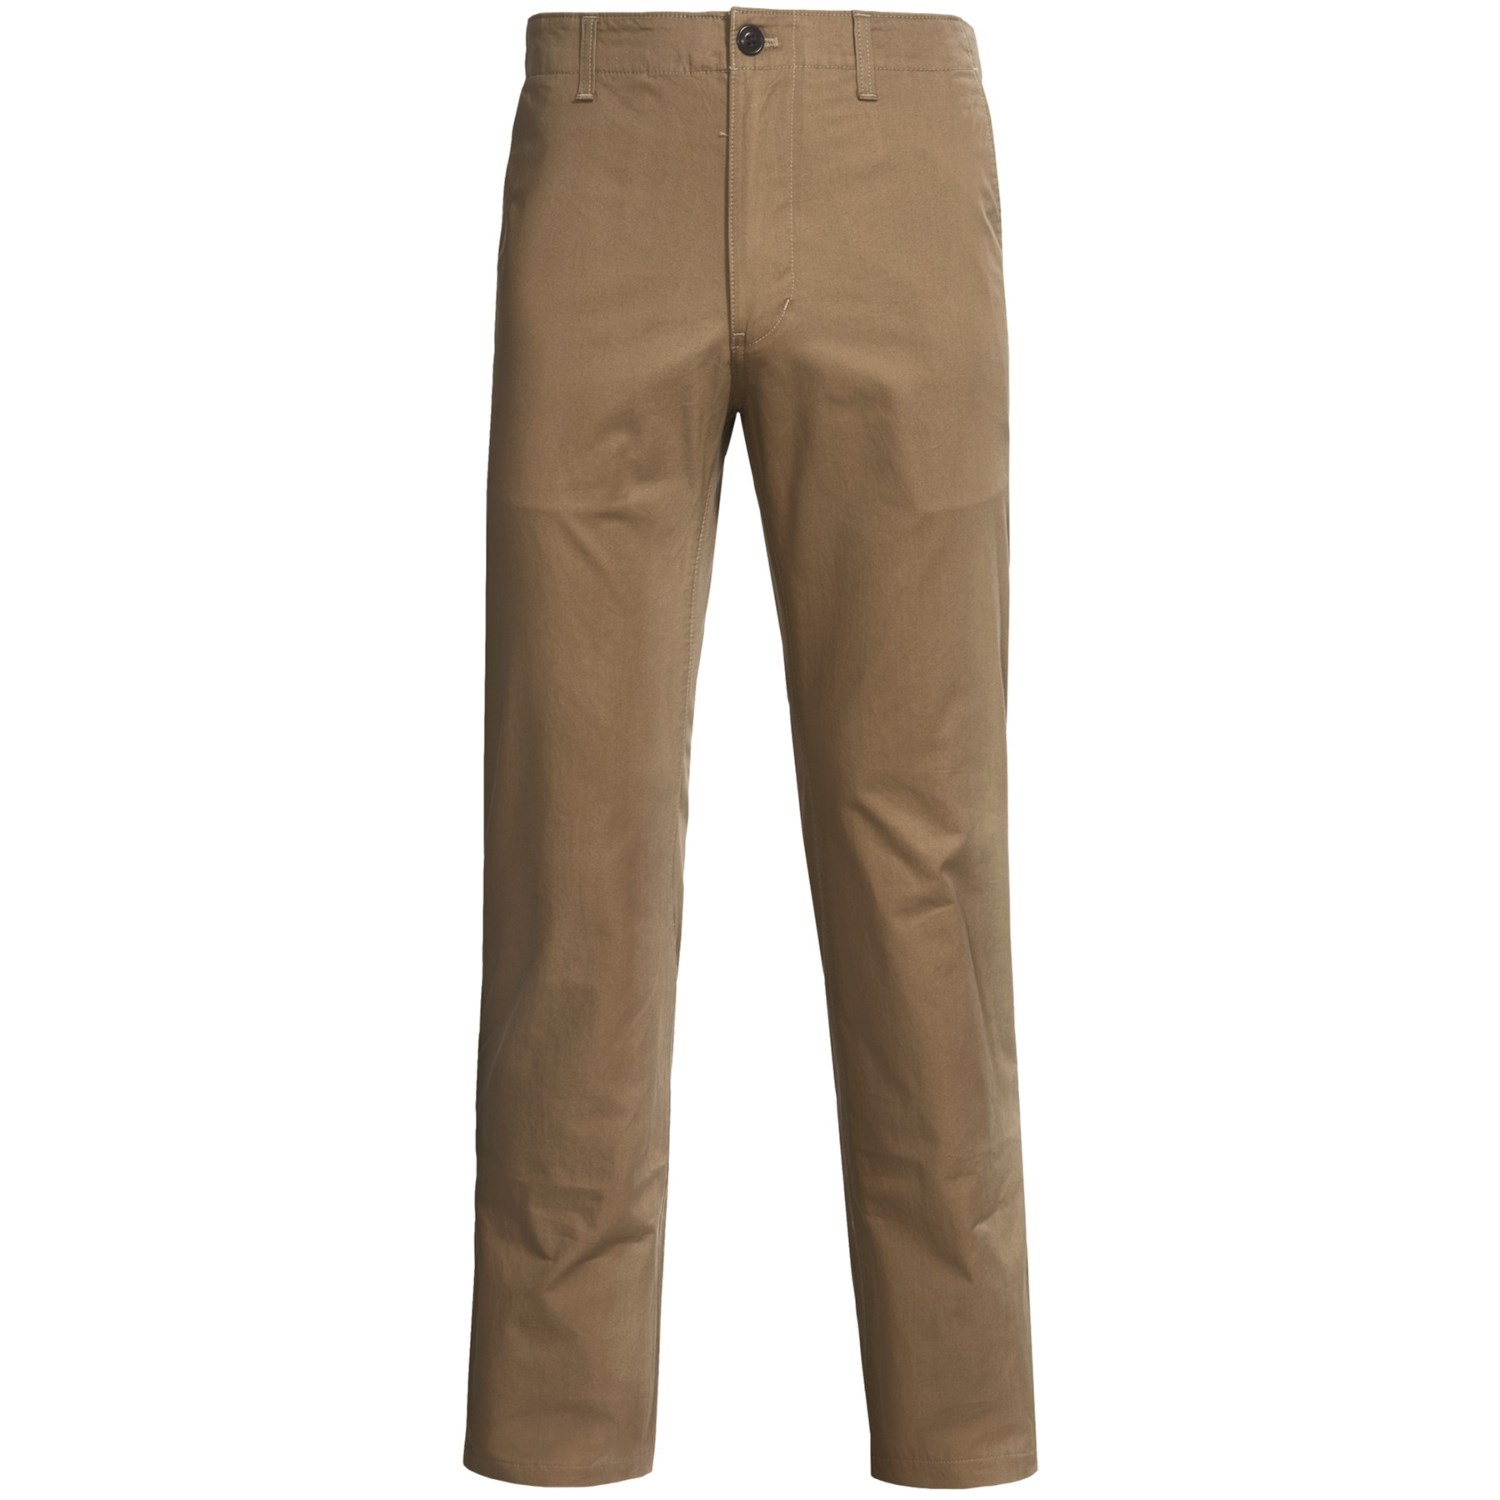 Free shipping on men's pants at dirtyinstalzonevx6.ga Shop men's dress pants, chinos, casual pants and joggers. Totally free shipping & returns.